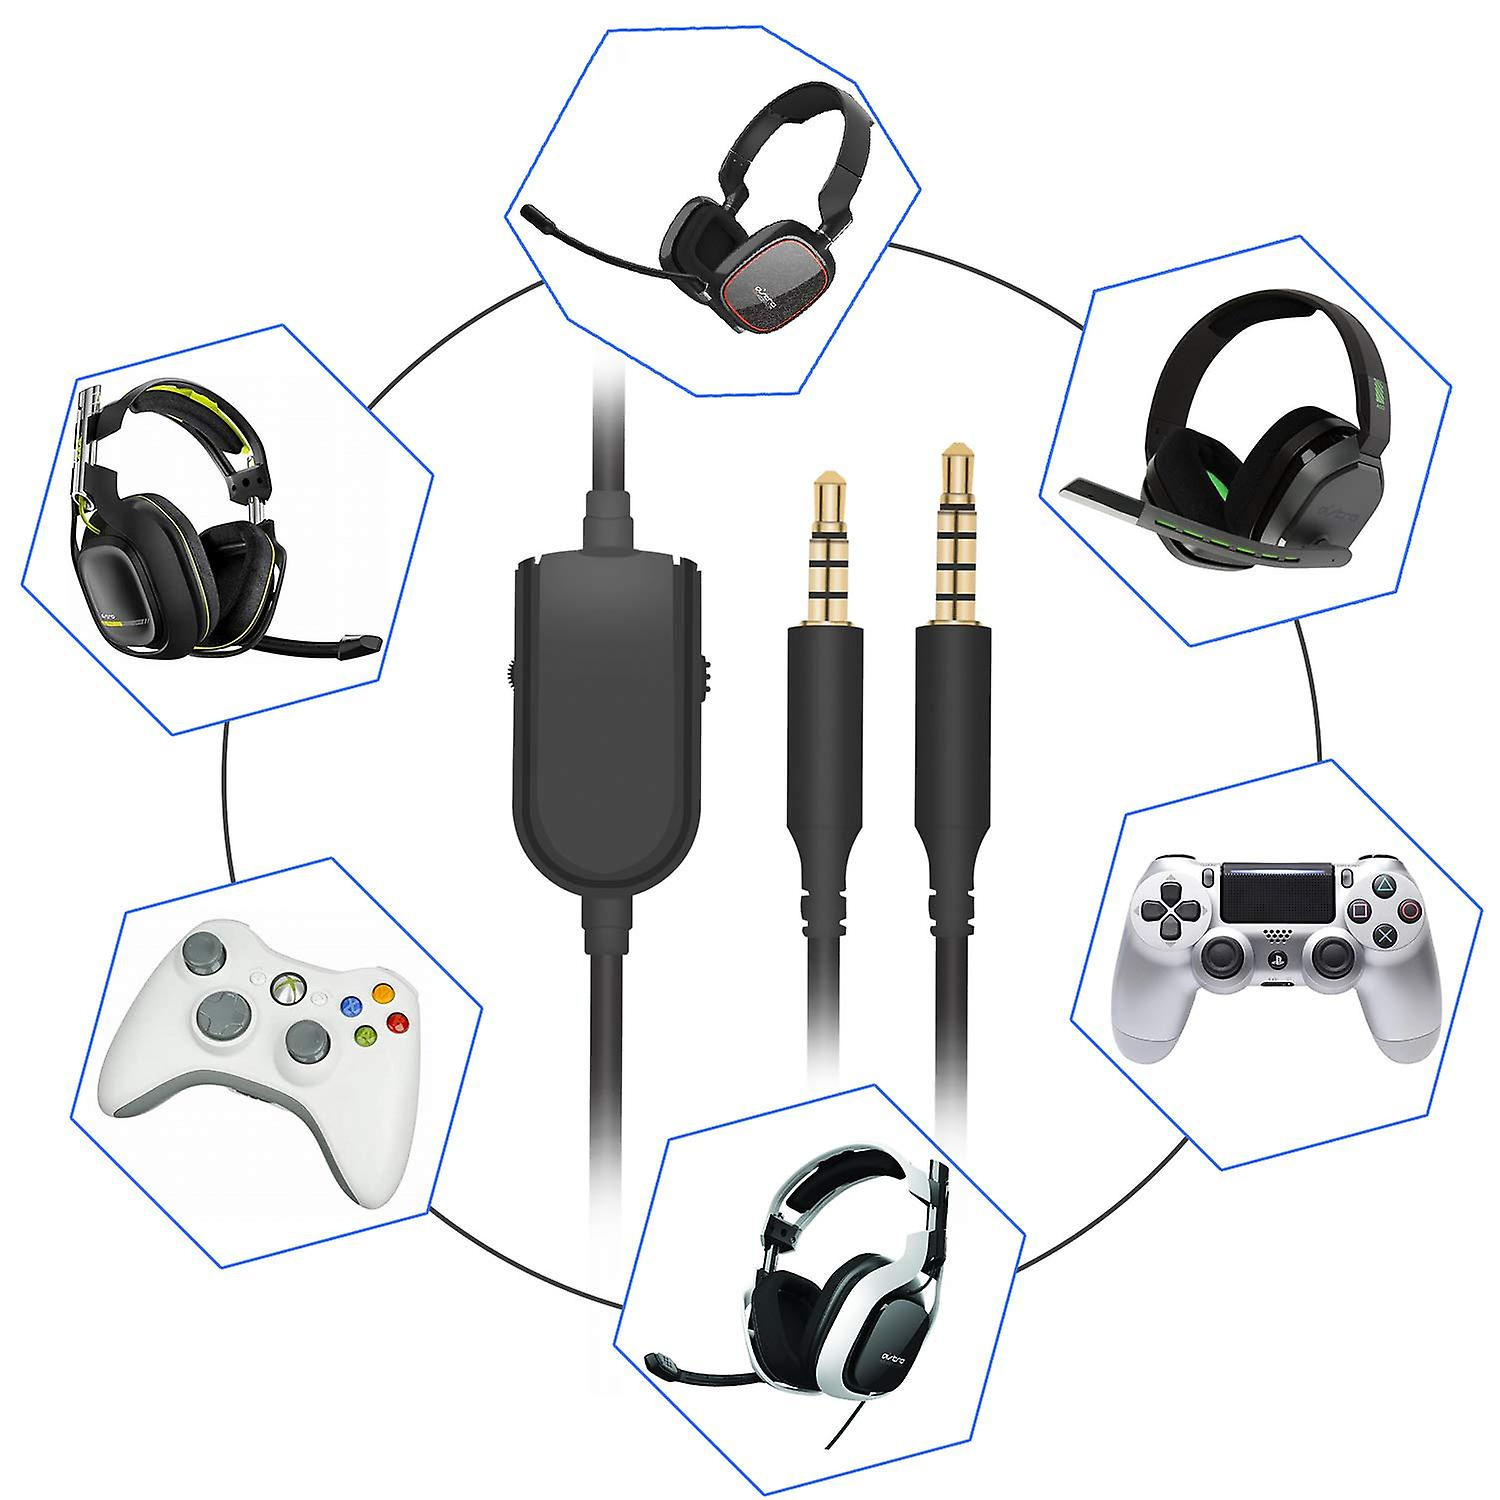 2m Replacement Astro Gaming Headset Daisy Chain Cable w/ Mute Button and Volume Control for MixAmp & A40 - Lead, Wire, Pro - 1.0m